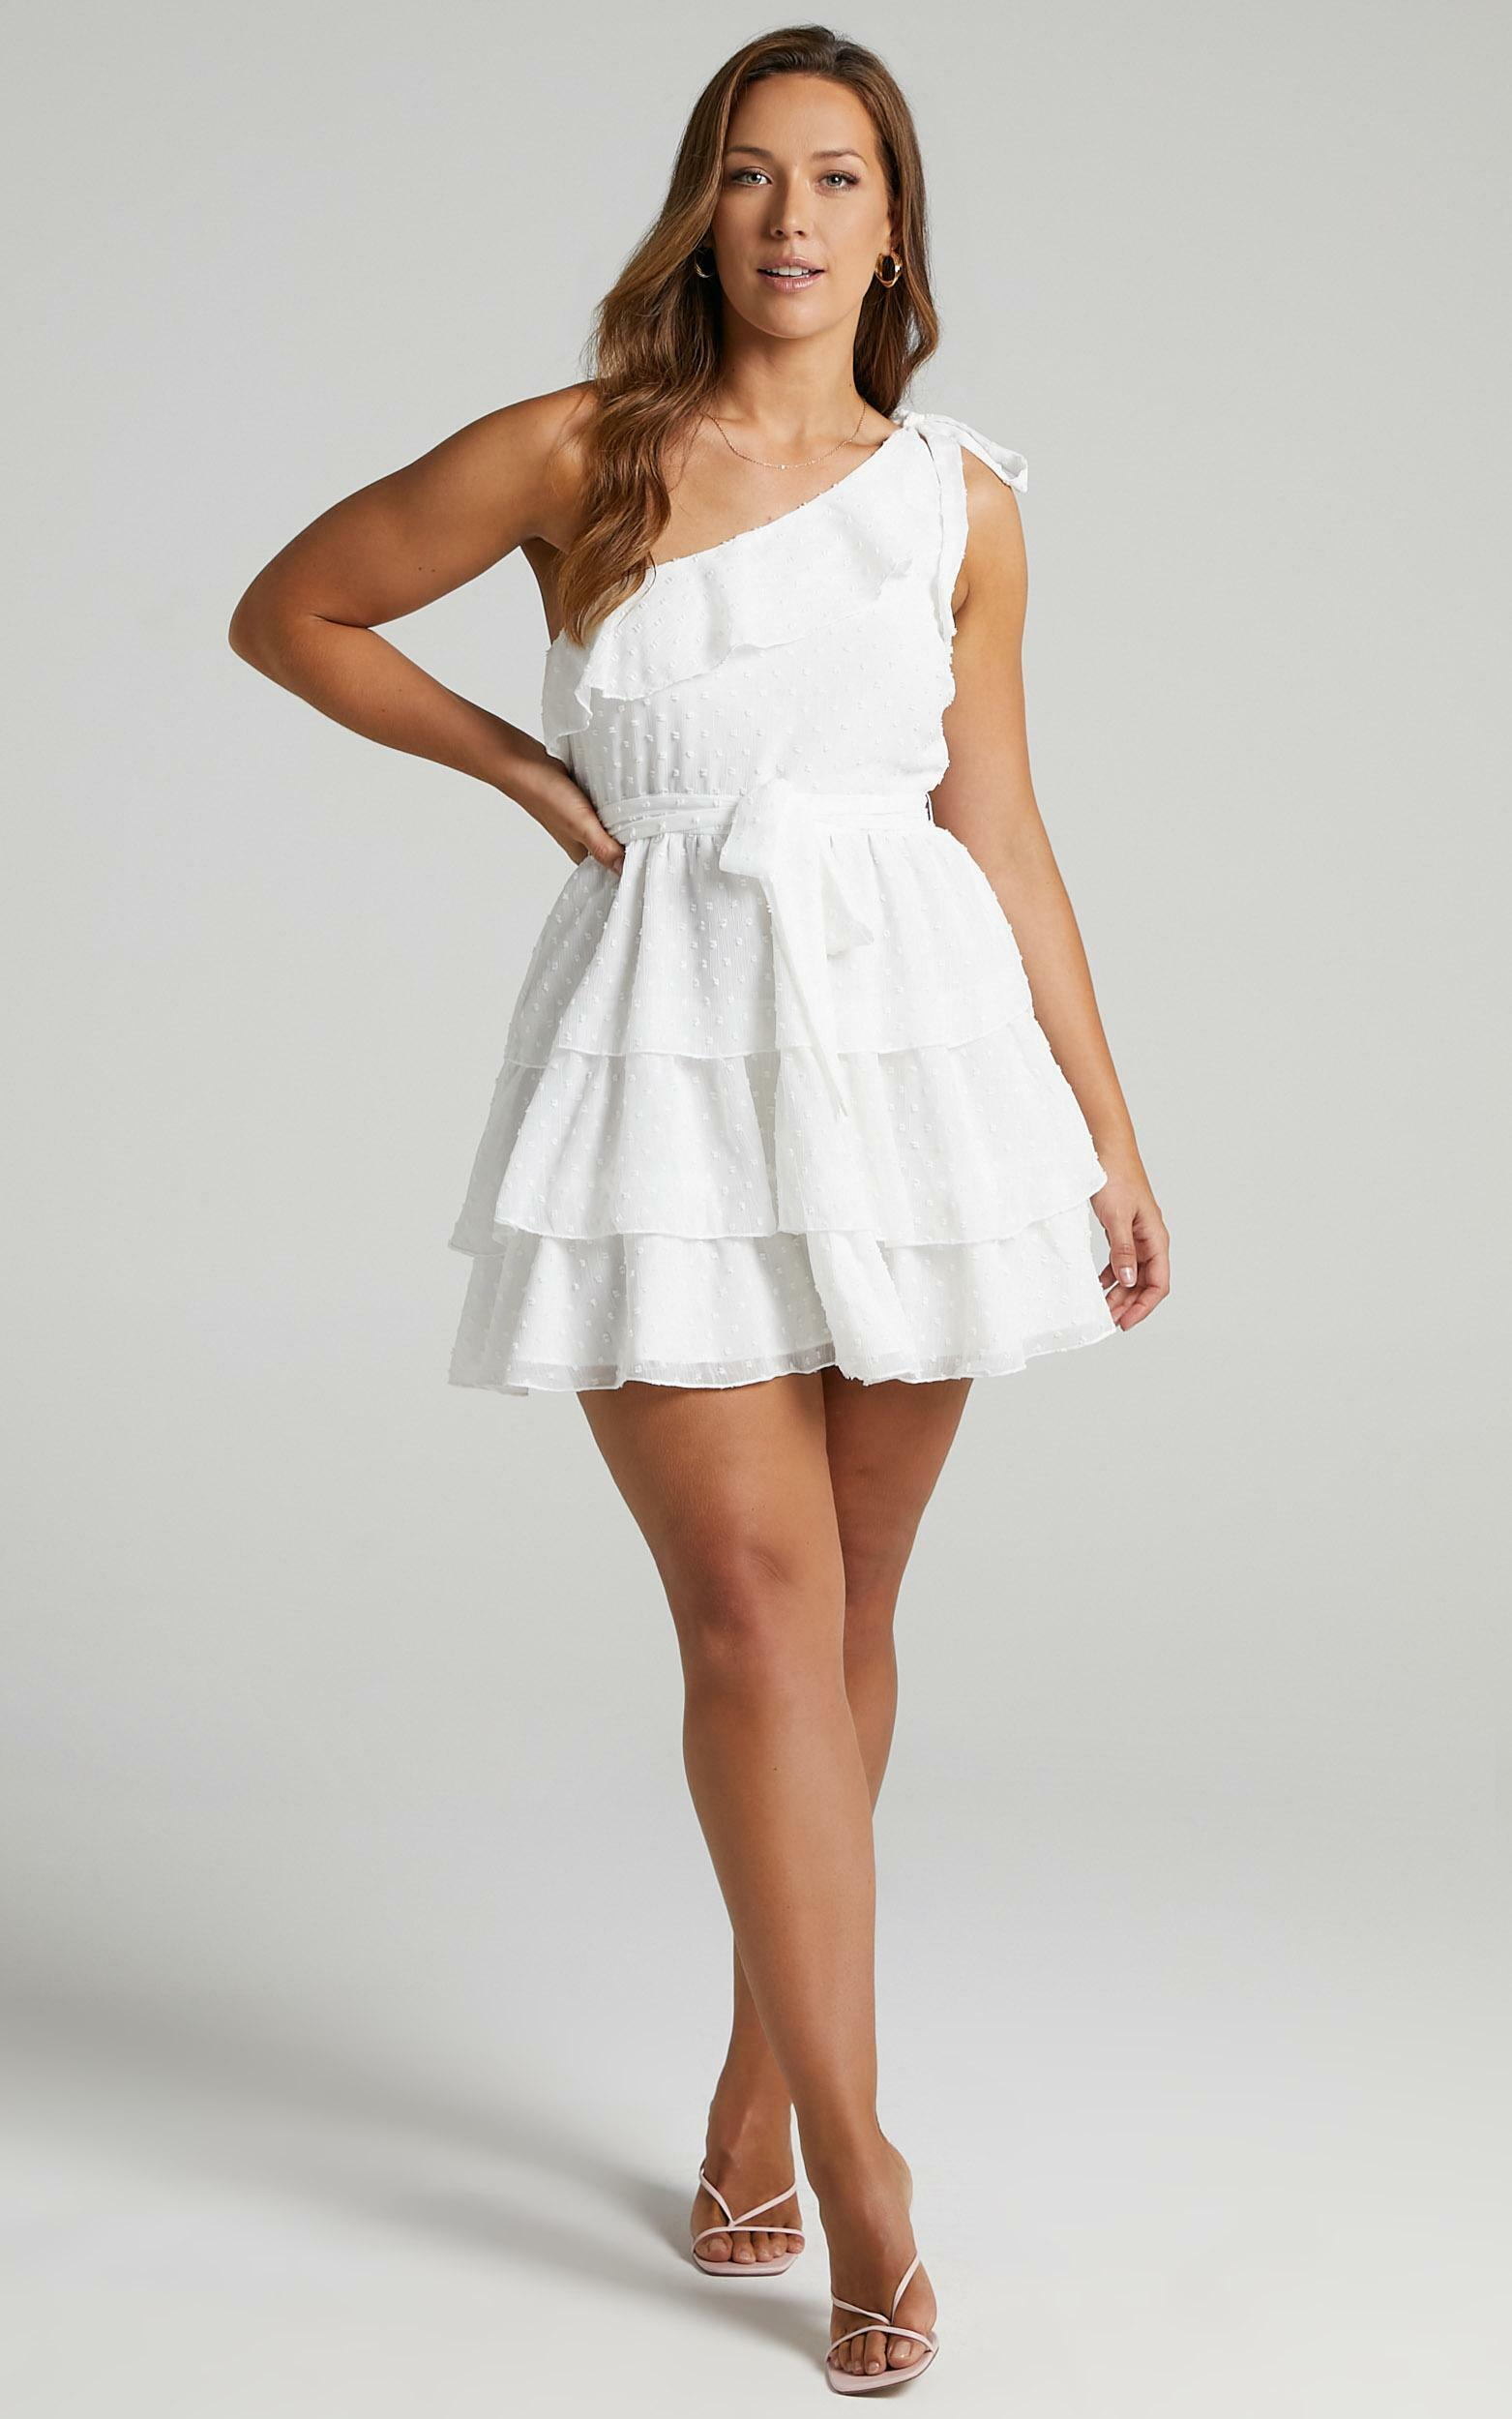 Darling I Am A Daydream Dress in White - 20, WHT7, hi-res image number null